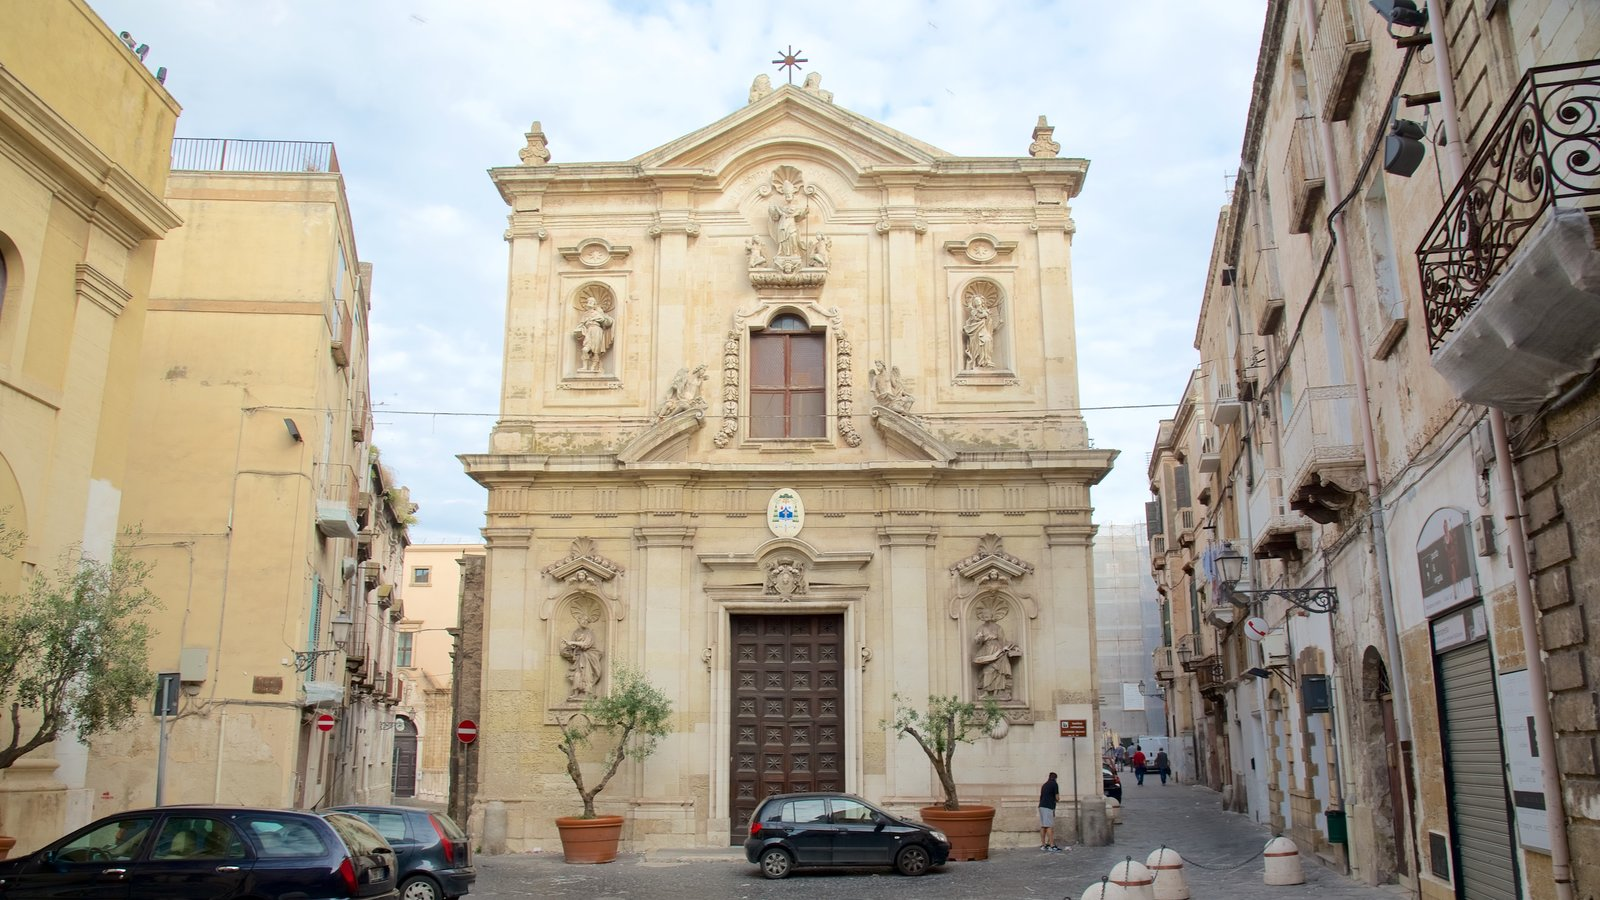 Taranto featuring street scenes, heritage architecture and a church or cathedral